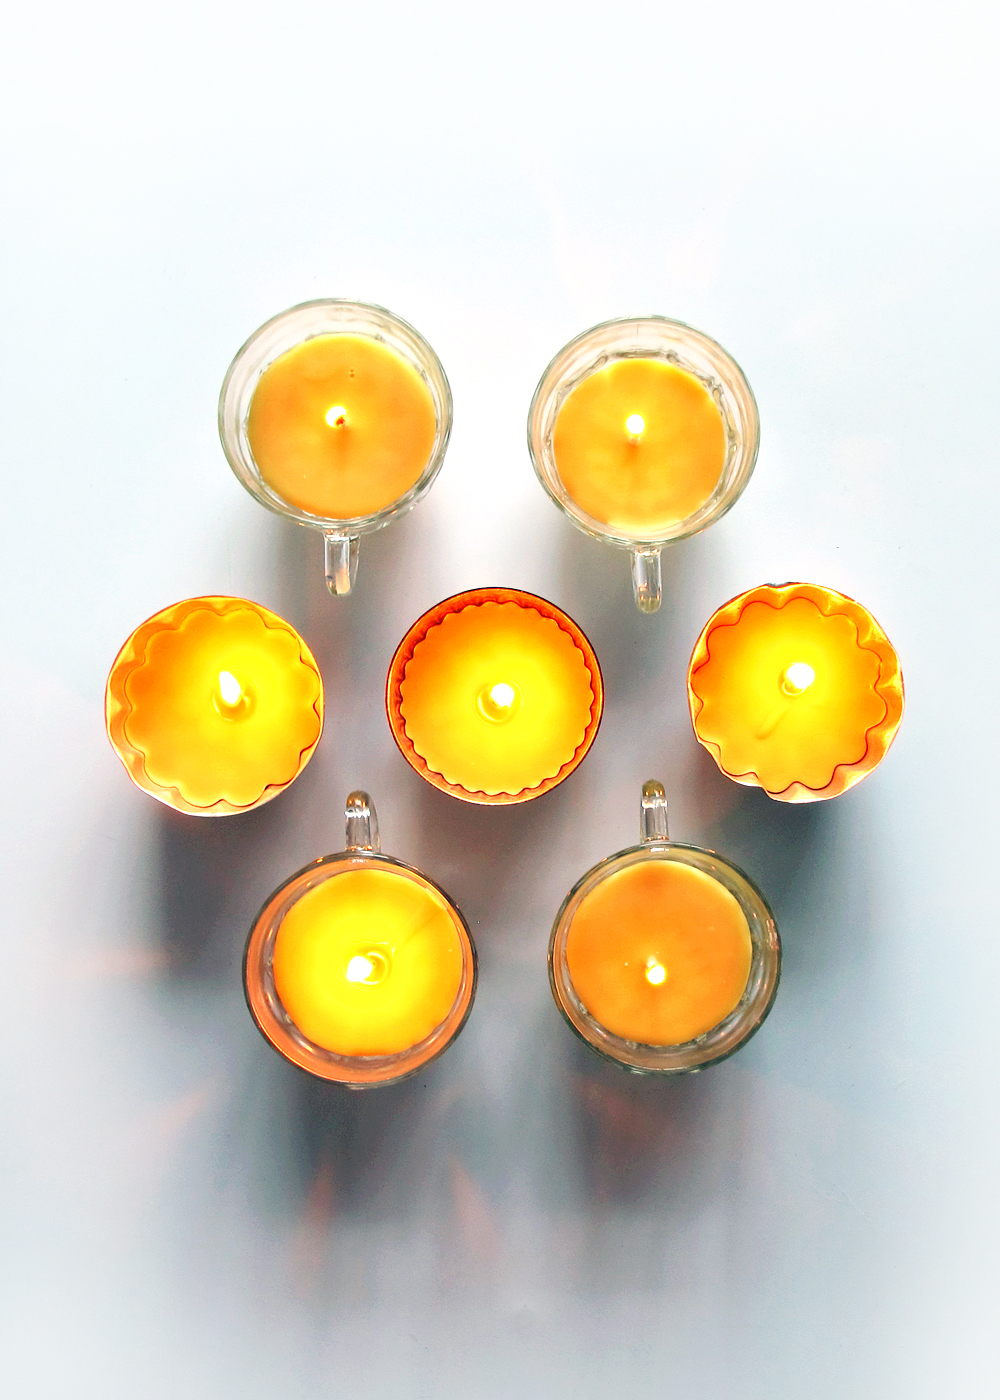 homemade beeswax candles in vintage teacups and jello tins